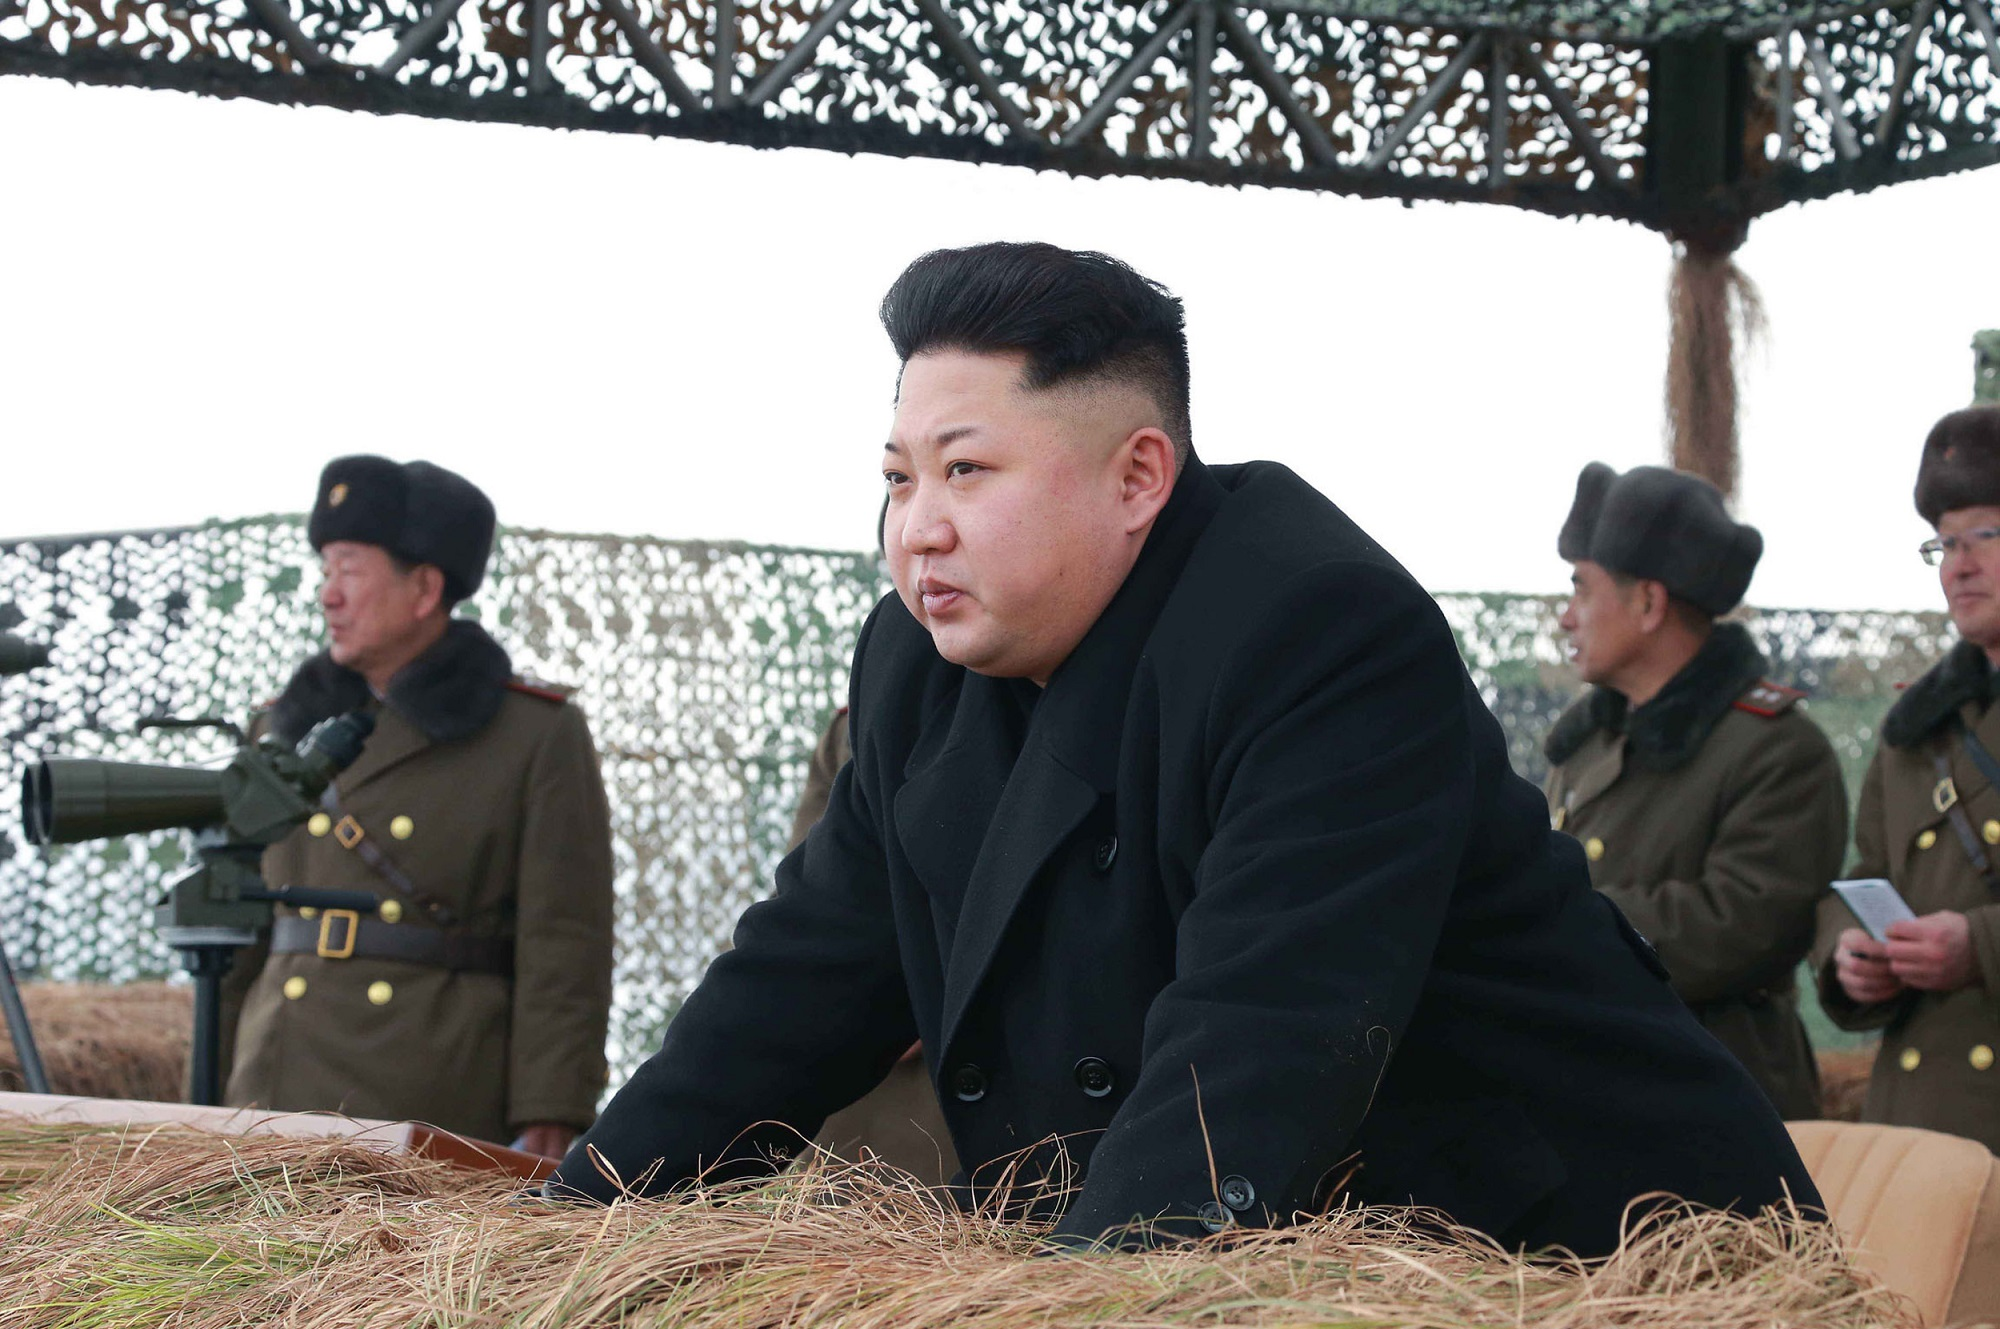 "This undated picture released from North Korea's official Korean Central News Agencdy (KCNA) on January 27, 2015 shows North Korean leader Kim Jong-Un (C) inspecting a winter river-crossing attack drill of the armored infantry sub-units of the motorized strike group in the western sector of the front of the Korean People's Army (KPA) at undisclosed place in North Korea.   AFP PHOTO / KCNA via KNS    REPUBLIC OF KOREA OUT  --- THIS PICTURE WAS MADE AVAILABLE BY A THIRD PARTY  ----- AFP CAN NOT INDEPENDENTLY VERIFY THE AUTHENTICITY, LOCATION, DATE AND CONTENT OF THIS IMAGE  ----  THIS PHOTO IS DISTRIBUTED EXACTLY AS RECEIVED BY AFP    ---EDITORS NOTE--- RESTRICTED TO EDITORIAL USE - MANDATORY CREDIT ""AFP PHOTO / KCNA VIA KNS"" - NO MARKETING NO ADVERTISING CAMPAIGNS - DISTRIBUTED AS A SERVICE TO CLIENTS"